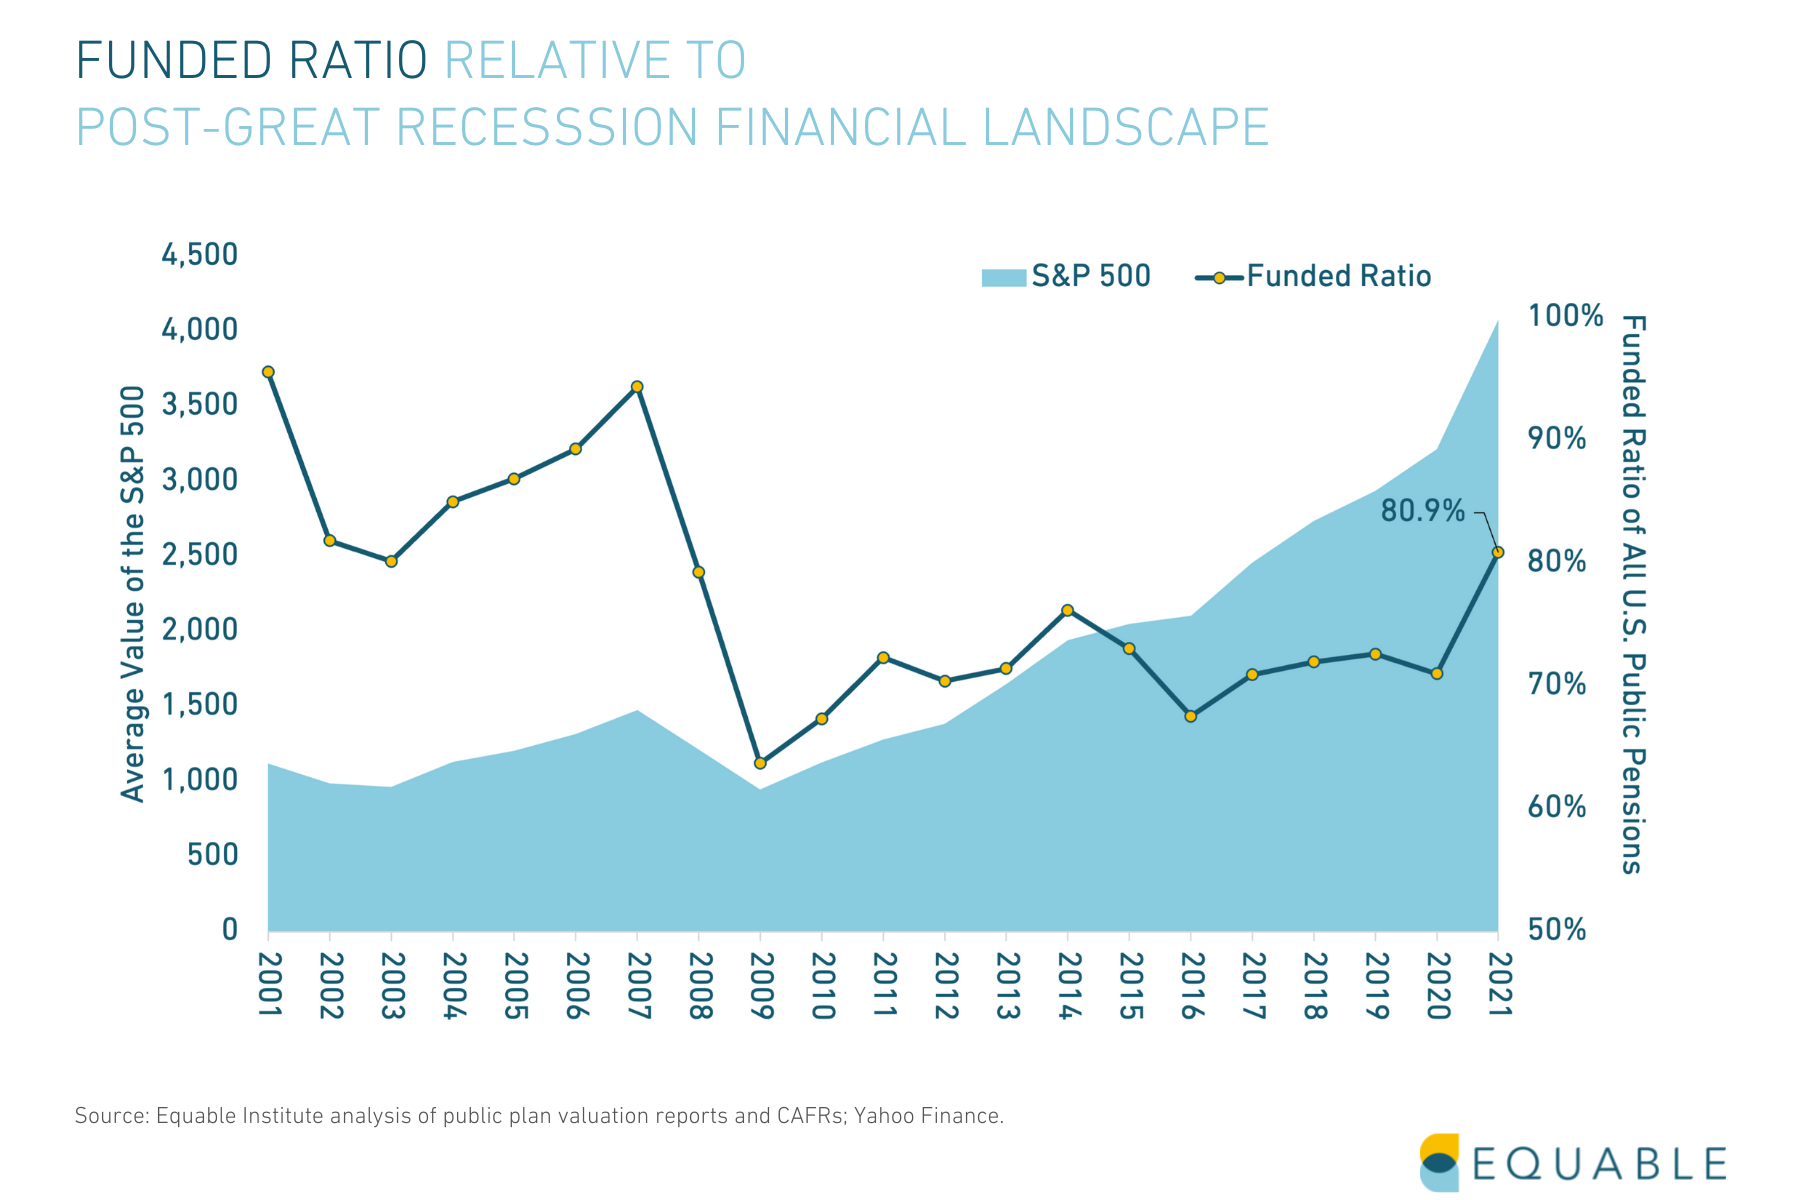 Public Pension Funded Ratio Relative to Post-Great Recession Financial Landscape 2021